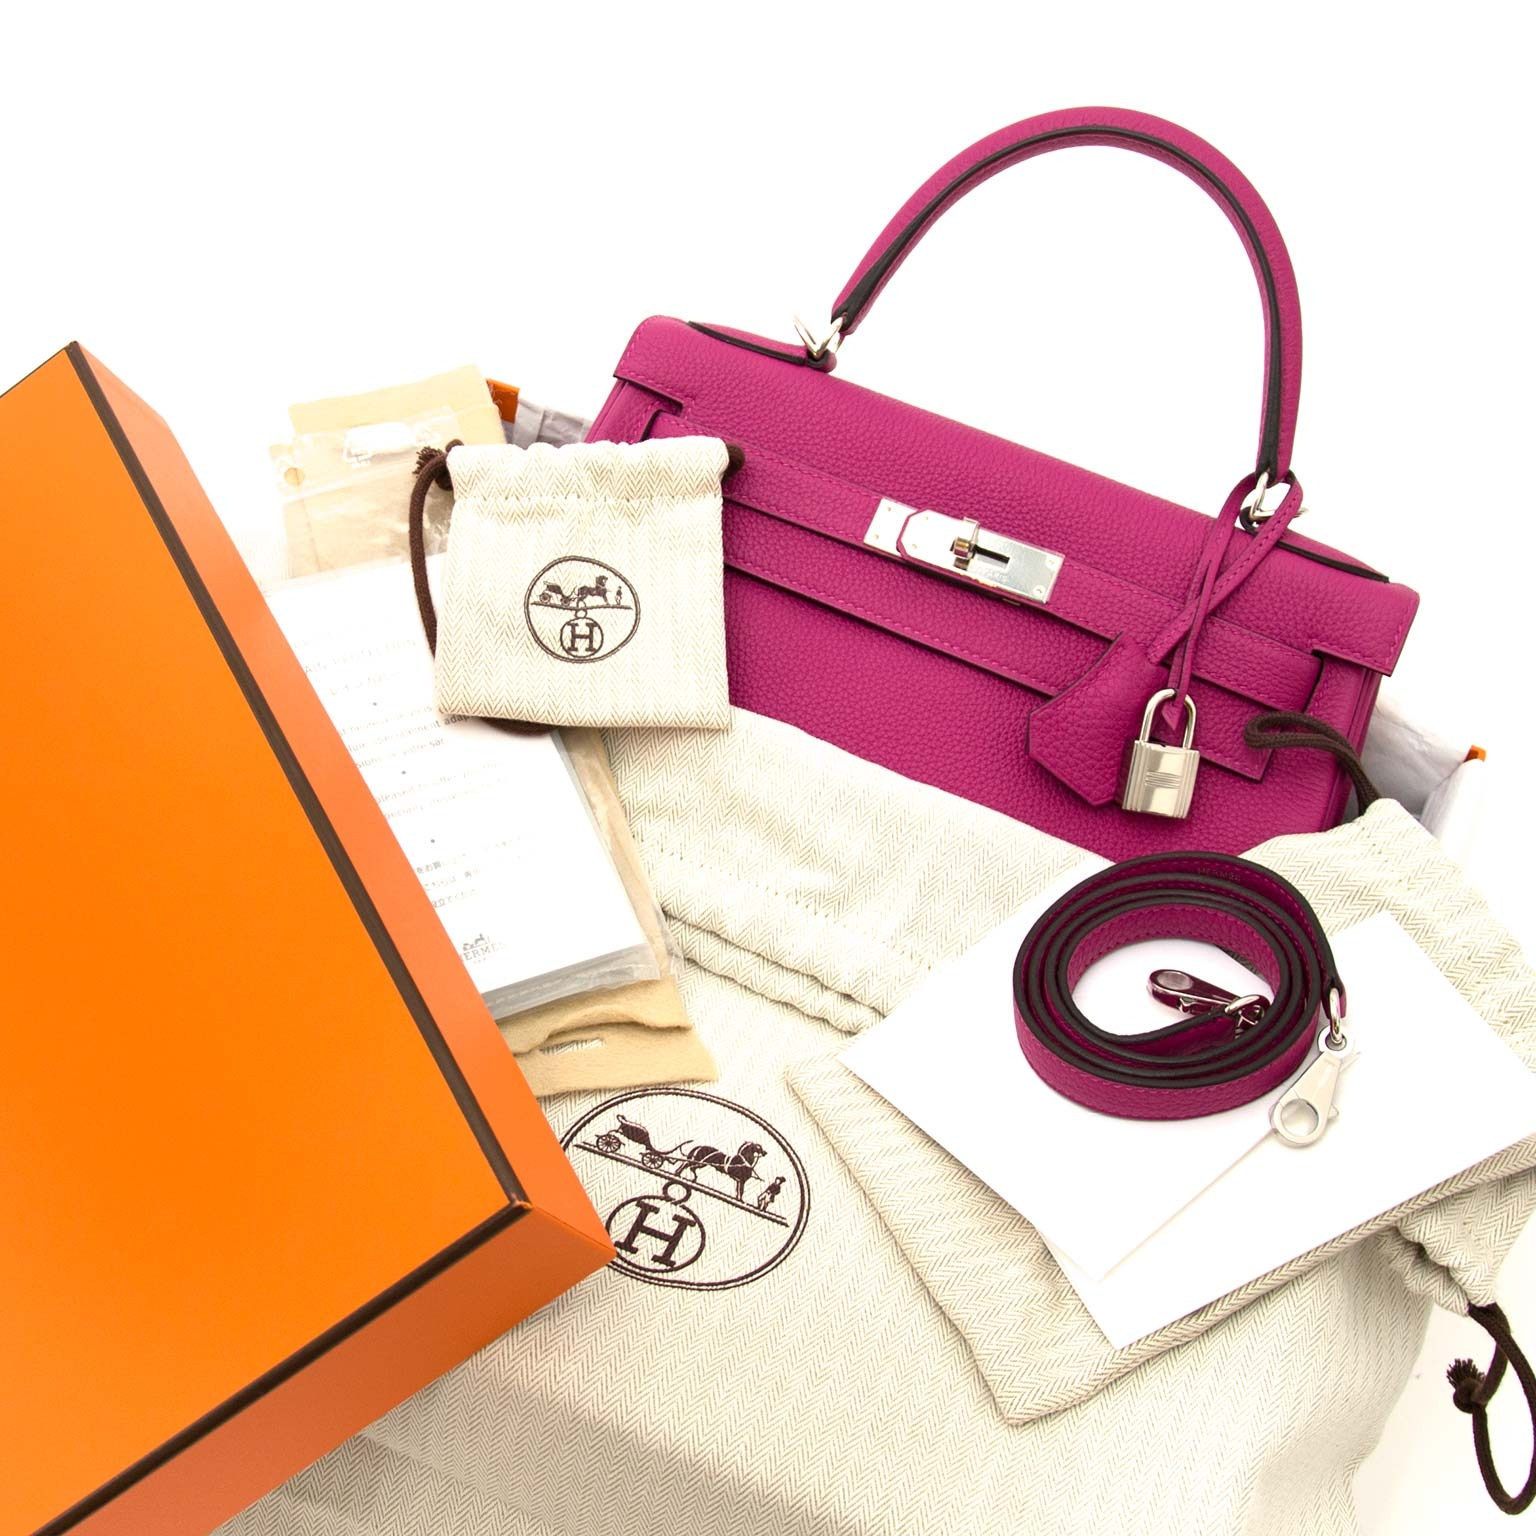 skip the waitinglist and get your Hermès Kelly 28 Togo Pourpre phw right now at labellov.com